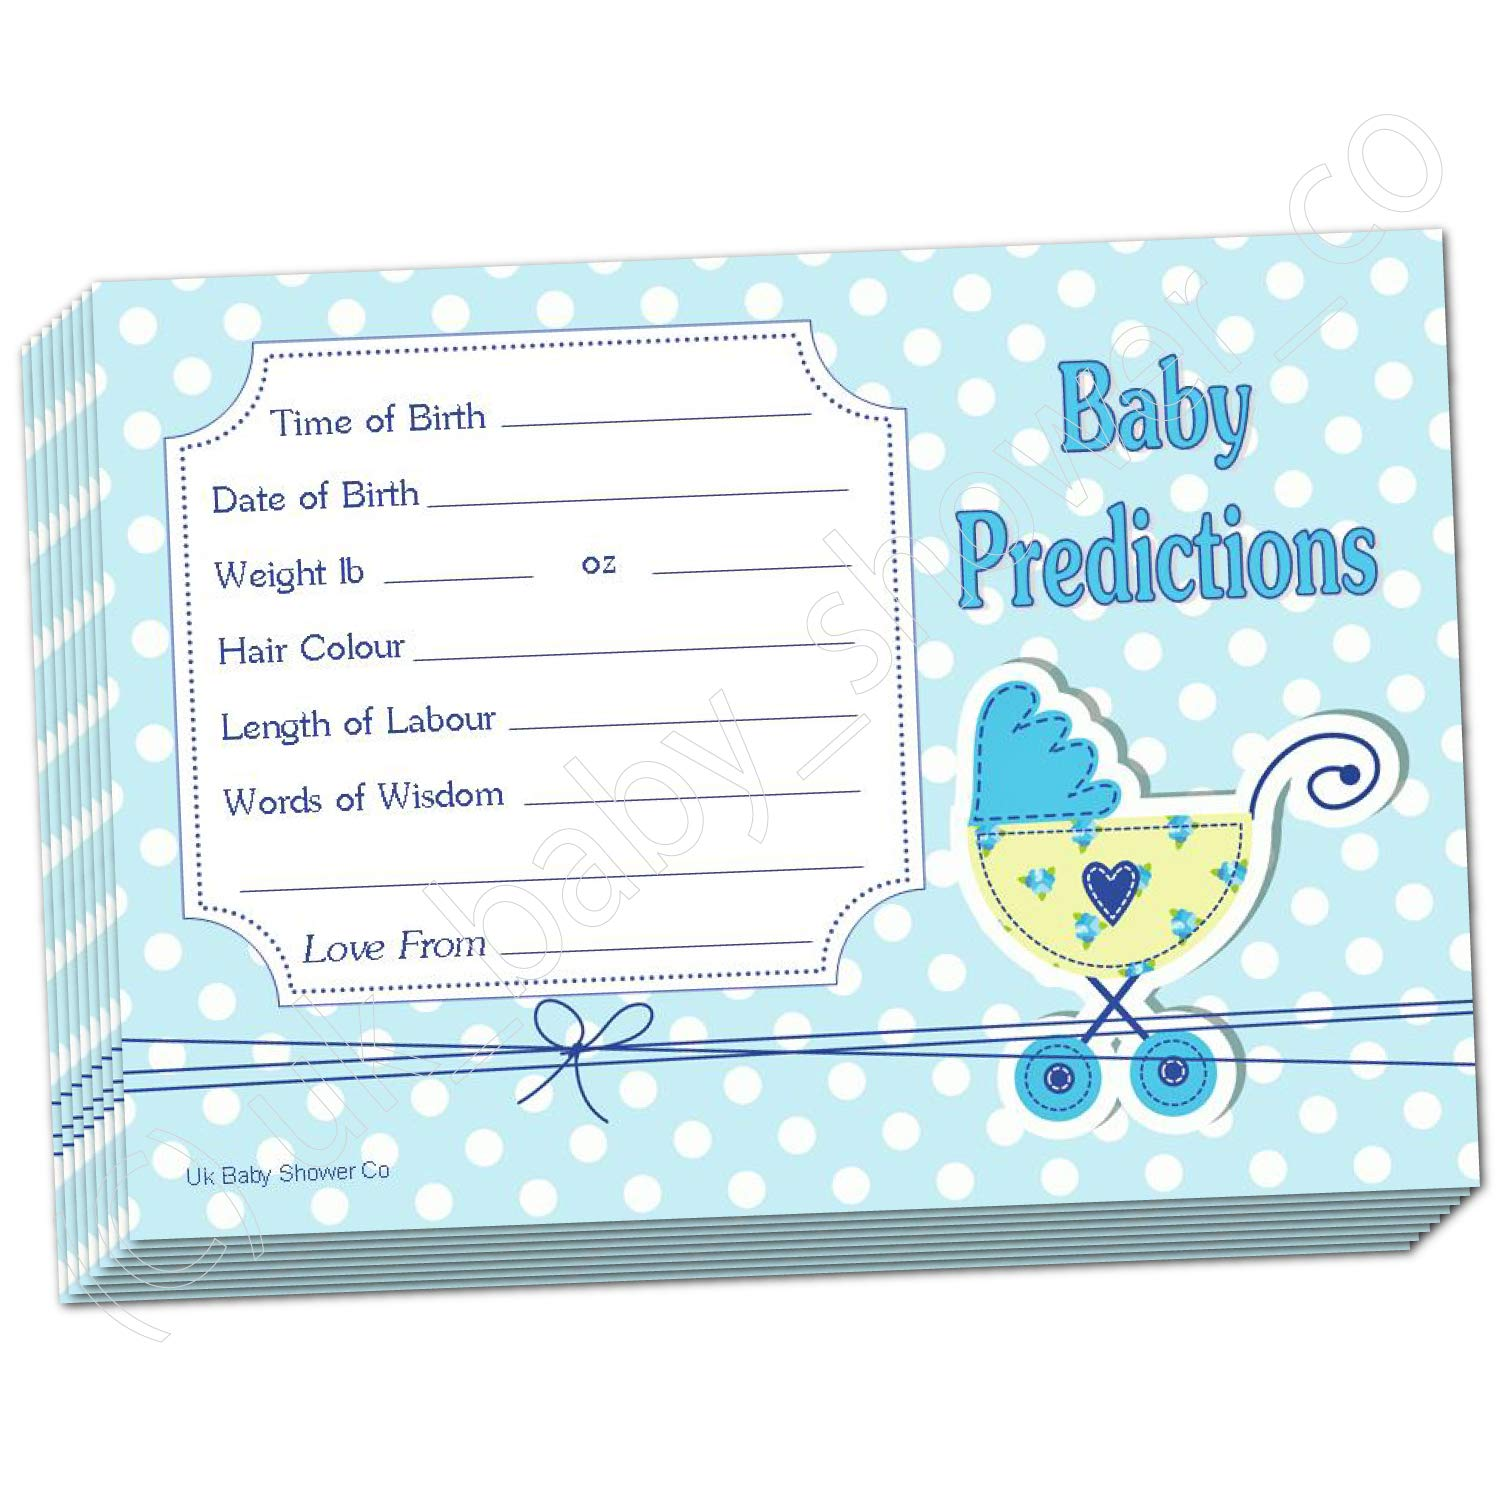 Baby Shower Prediction Cards - Polka DOTS_Blue (30 Cards) Uk Baby Shower Co Ltd 10276